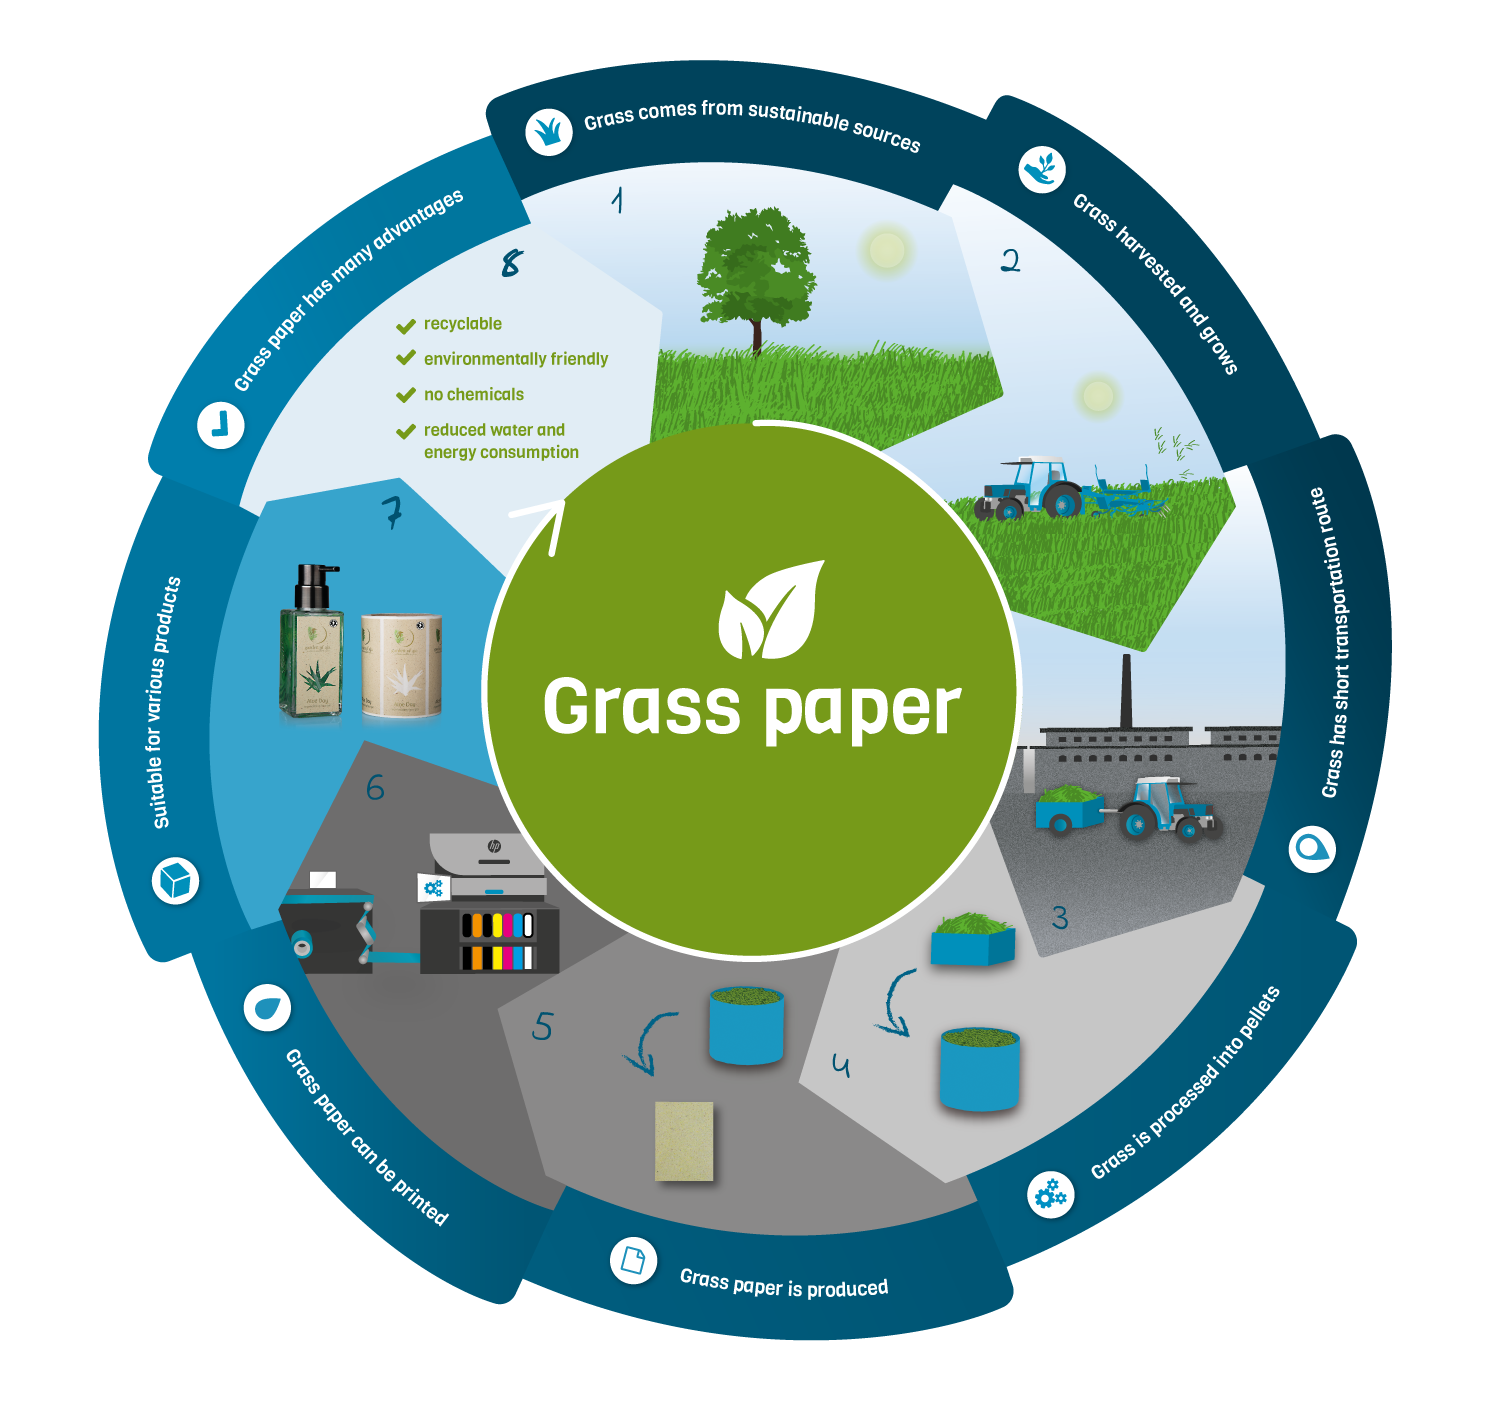 Grass Paper cycle